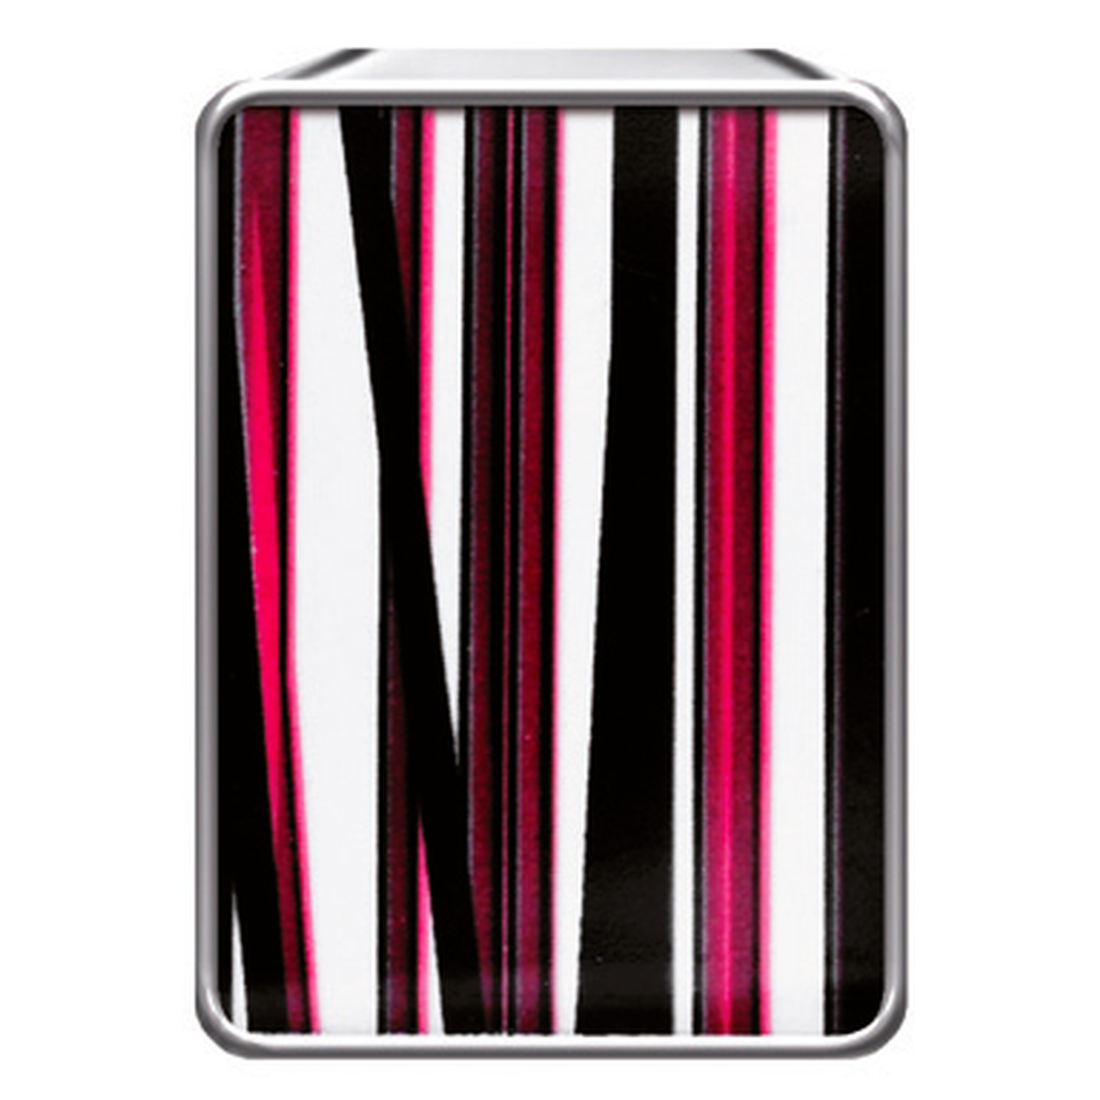 DECOR INLAY STRIPES RED